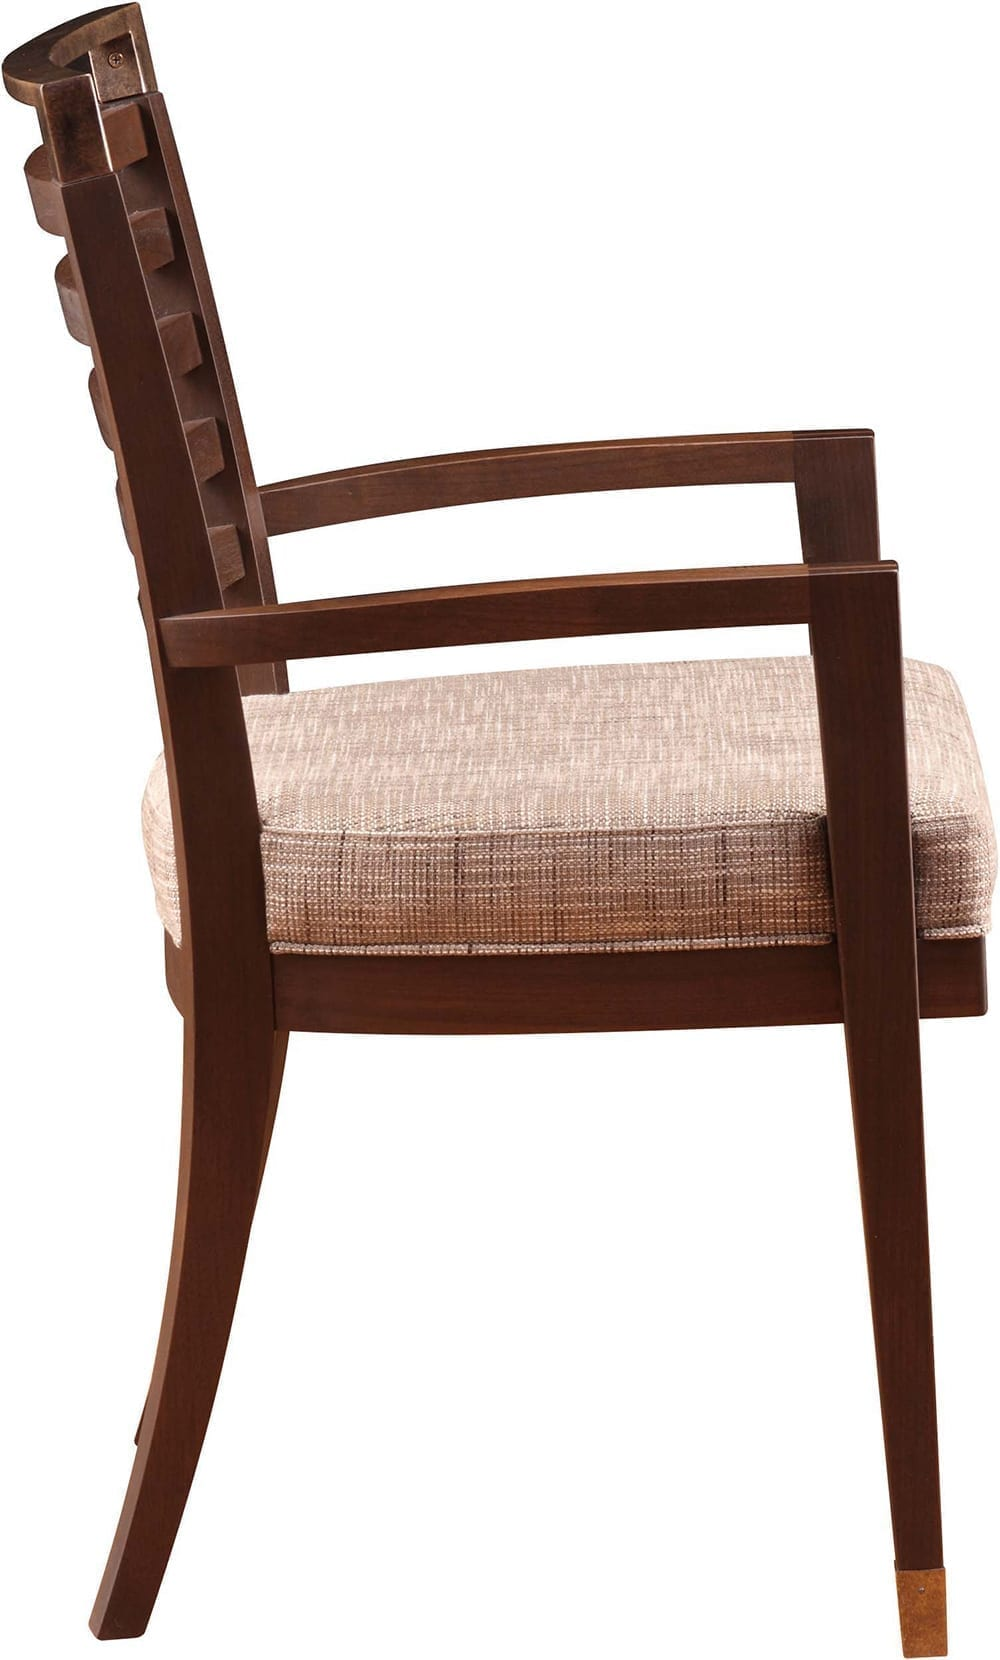 Arm Chairs Addison Ladder Back Arm Chair Studio By Stickley Collection Stickley Audi Furniture